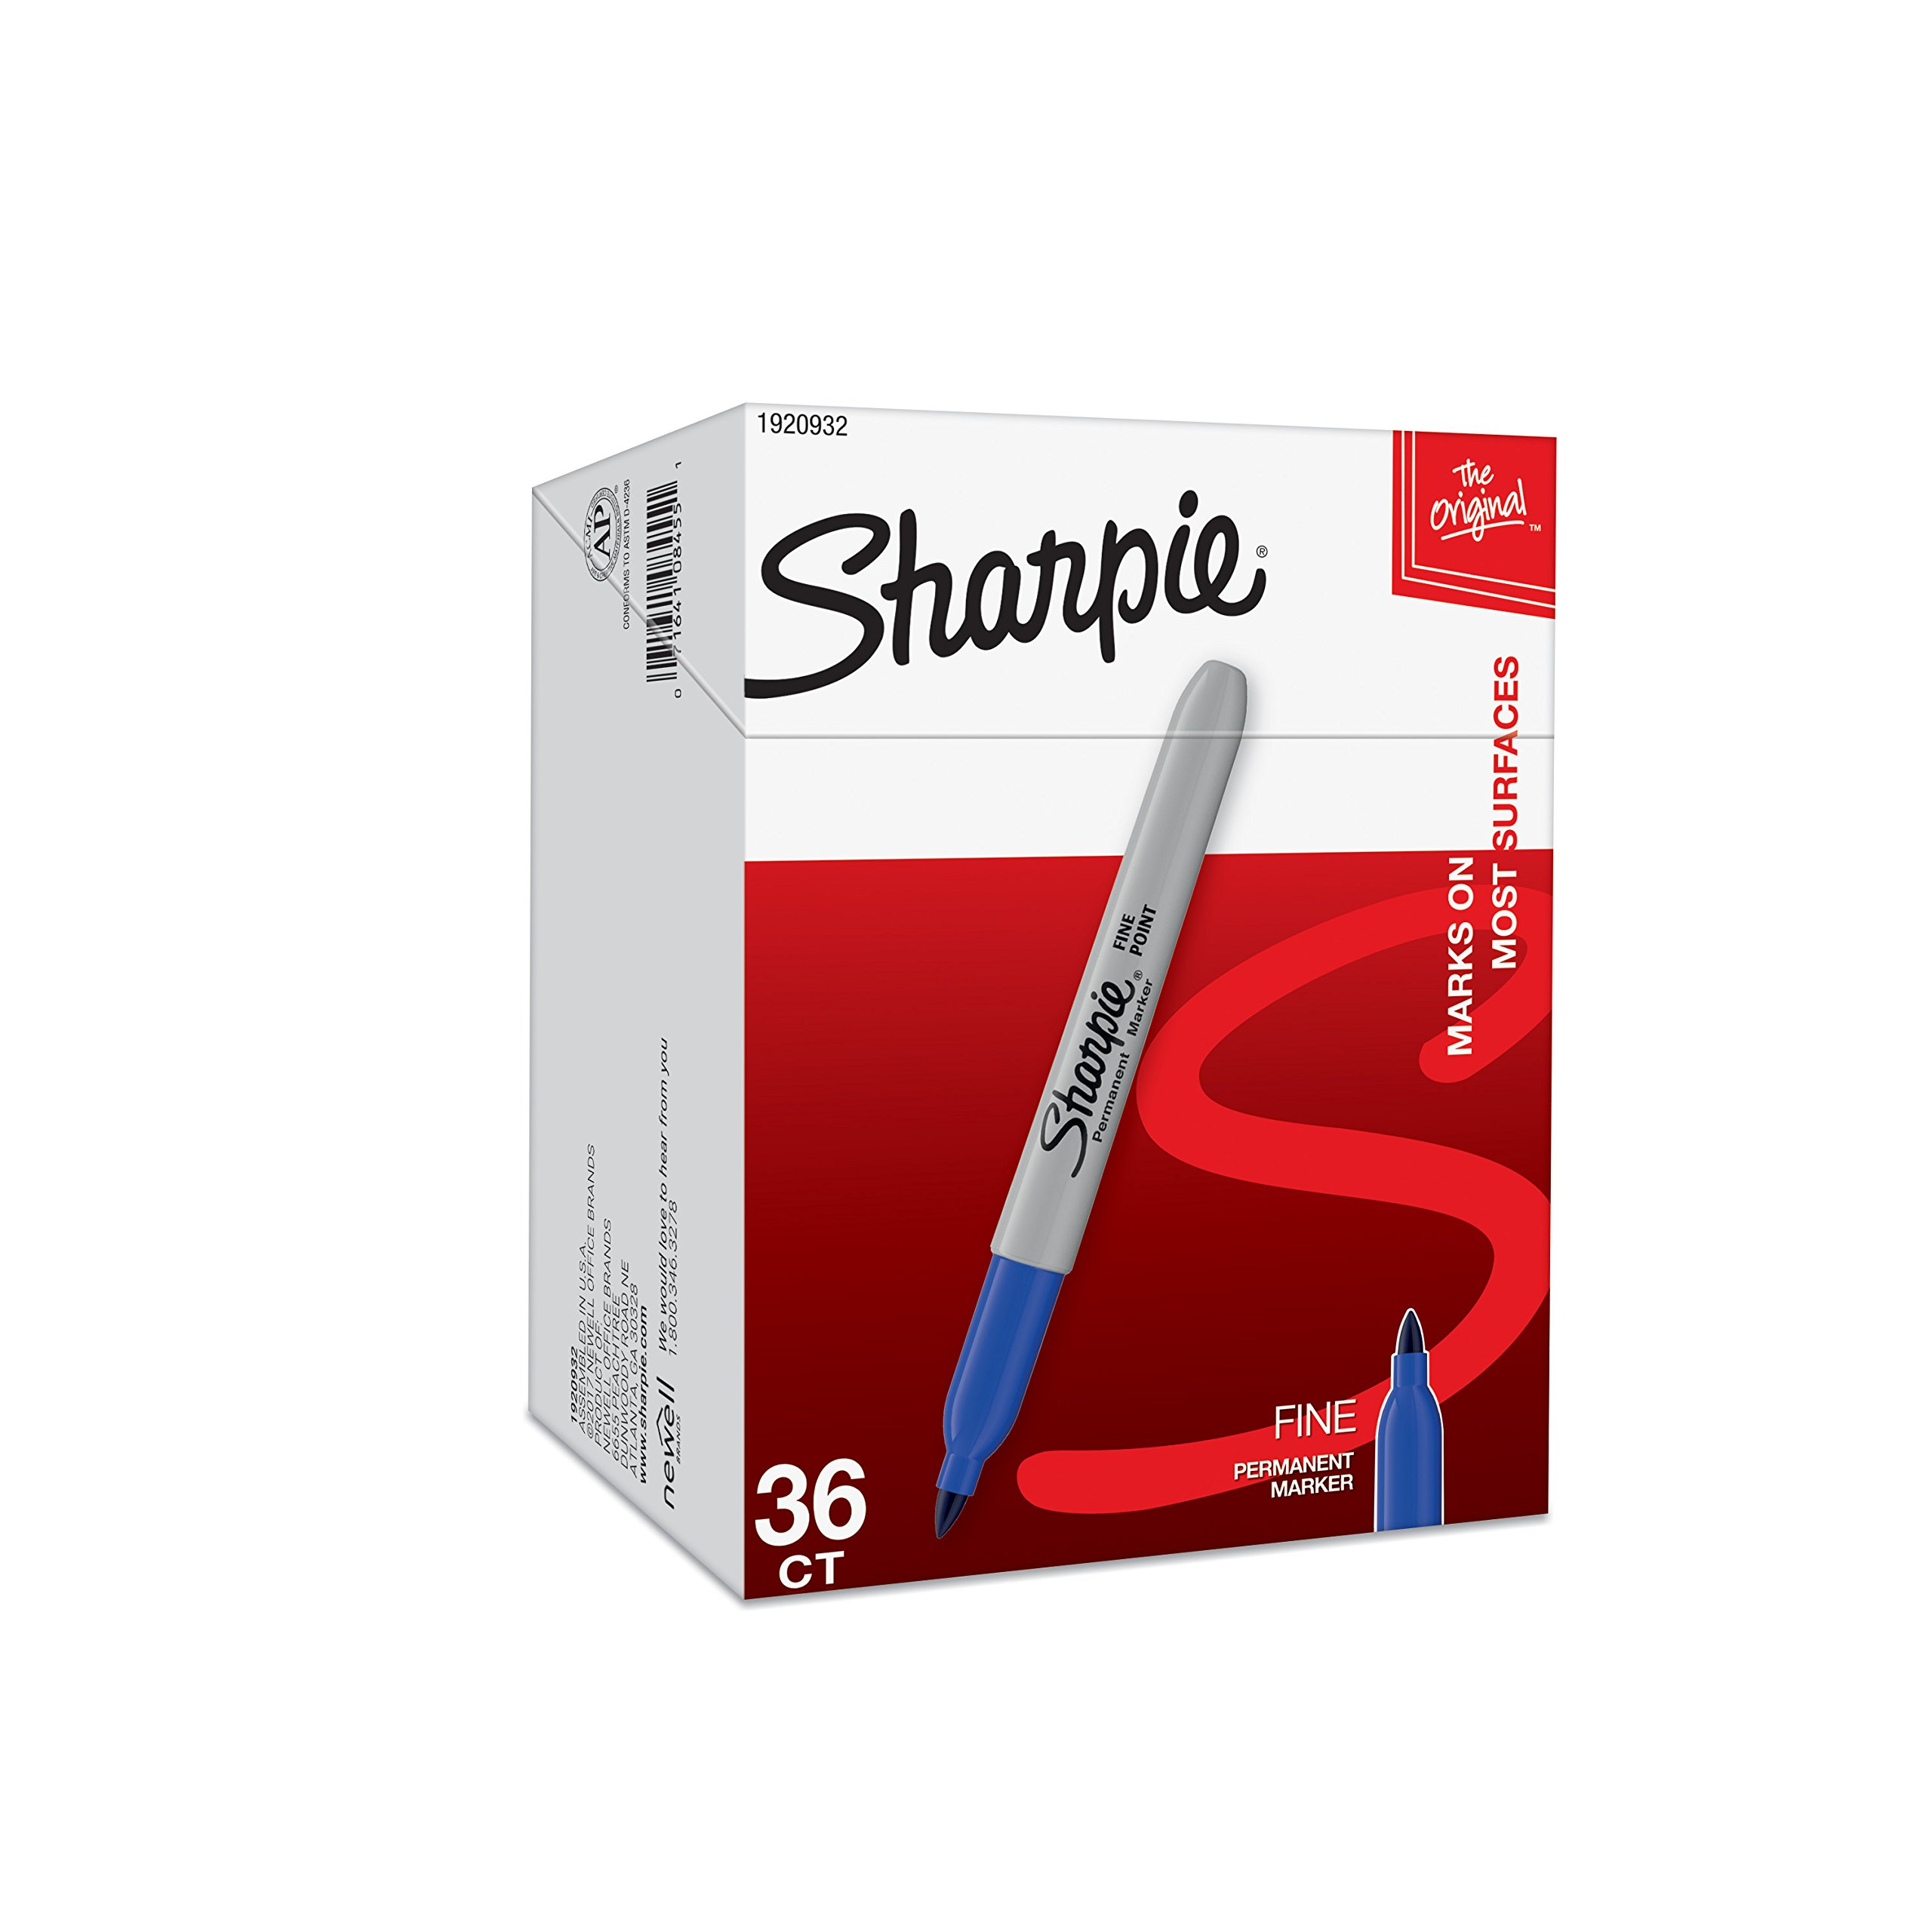 Sharpie Permanent Markers, Fine Point, Blue, 36-Pack (1920932) by SHARPIE